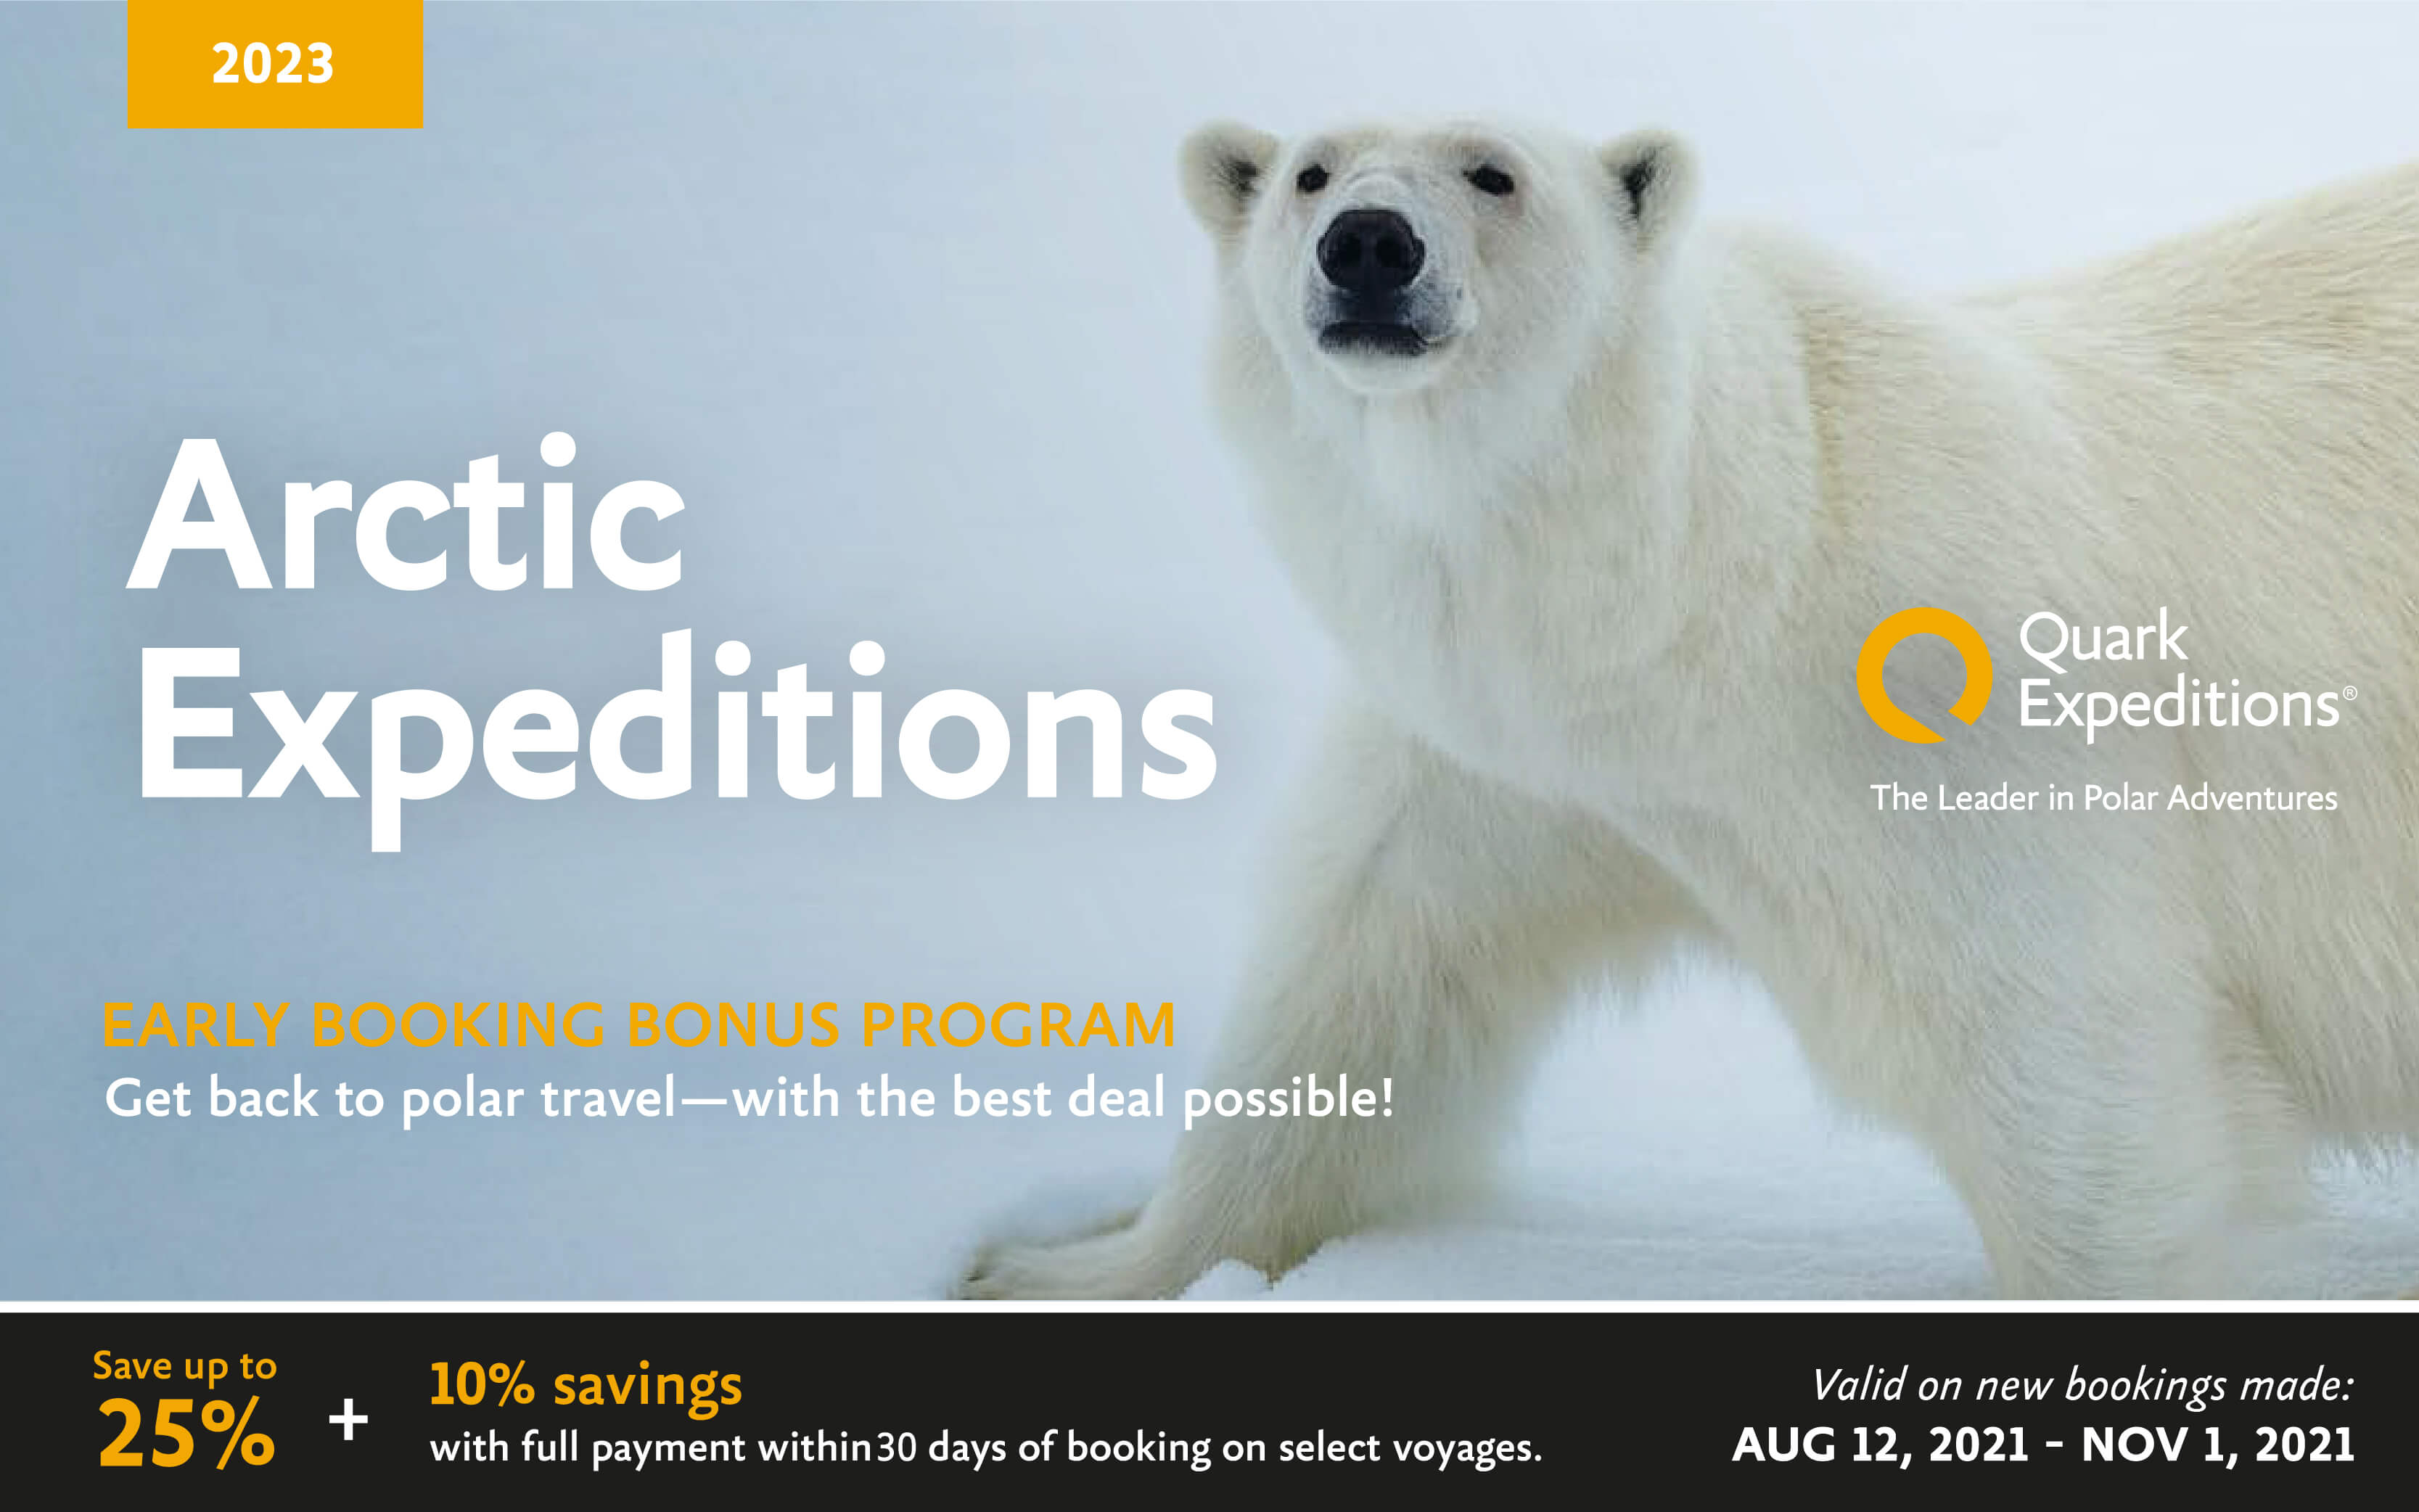 Get back to polar traveling and save up to 35% with Quark Expeditions